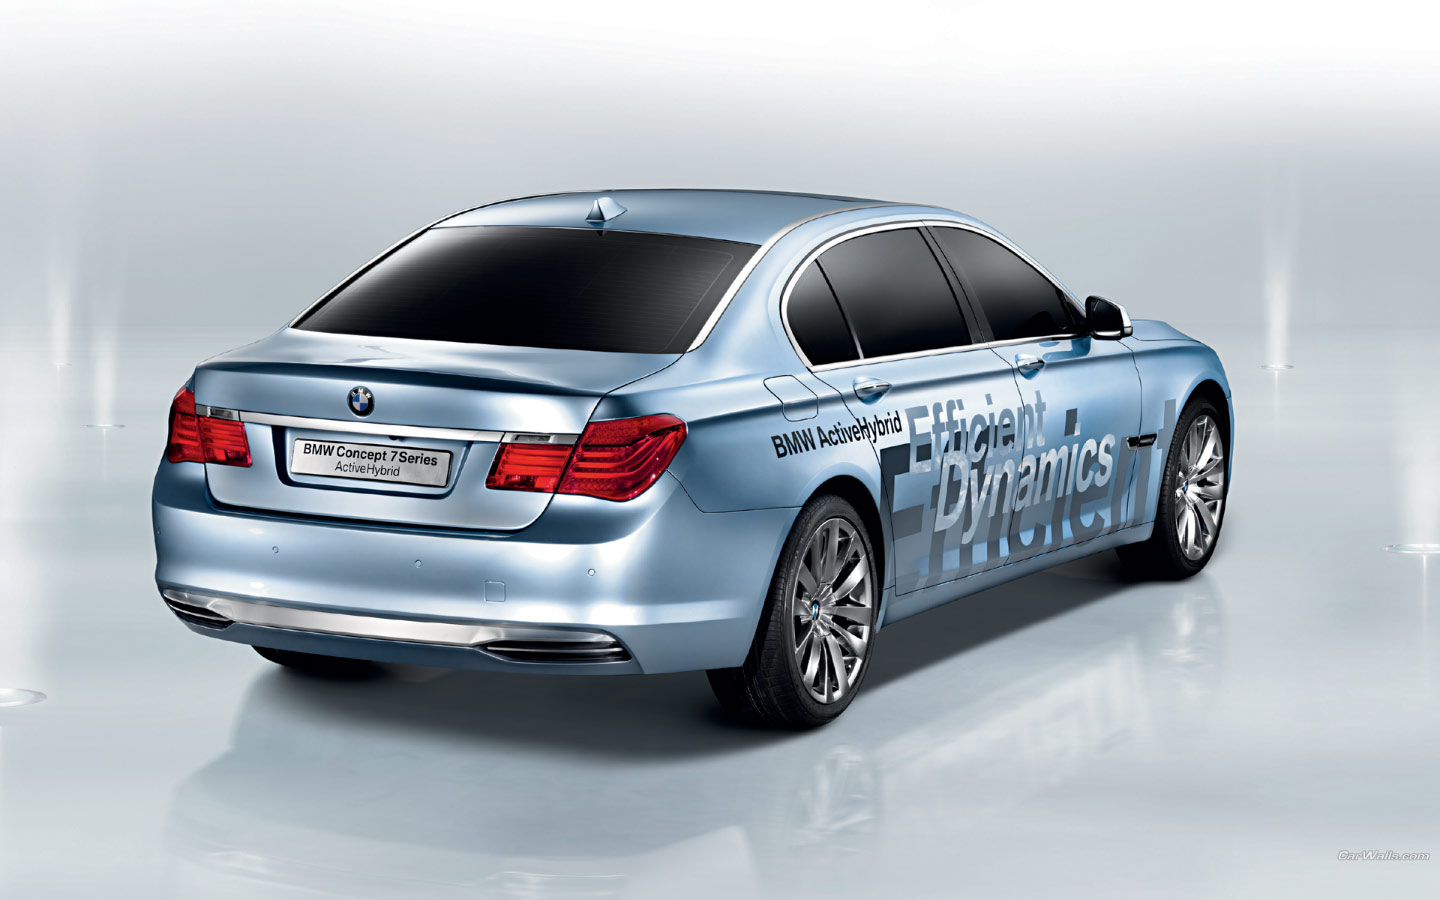 Incredible BMW 7 Series ActiveHybrid Concept 1440x900 b37 - Tapety na pulpit  1440 x 900 · 134 kB · jpeg